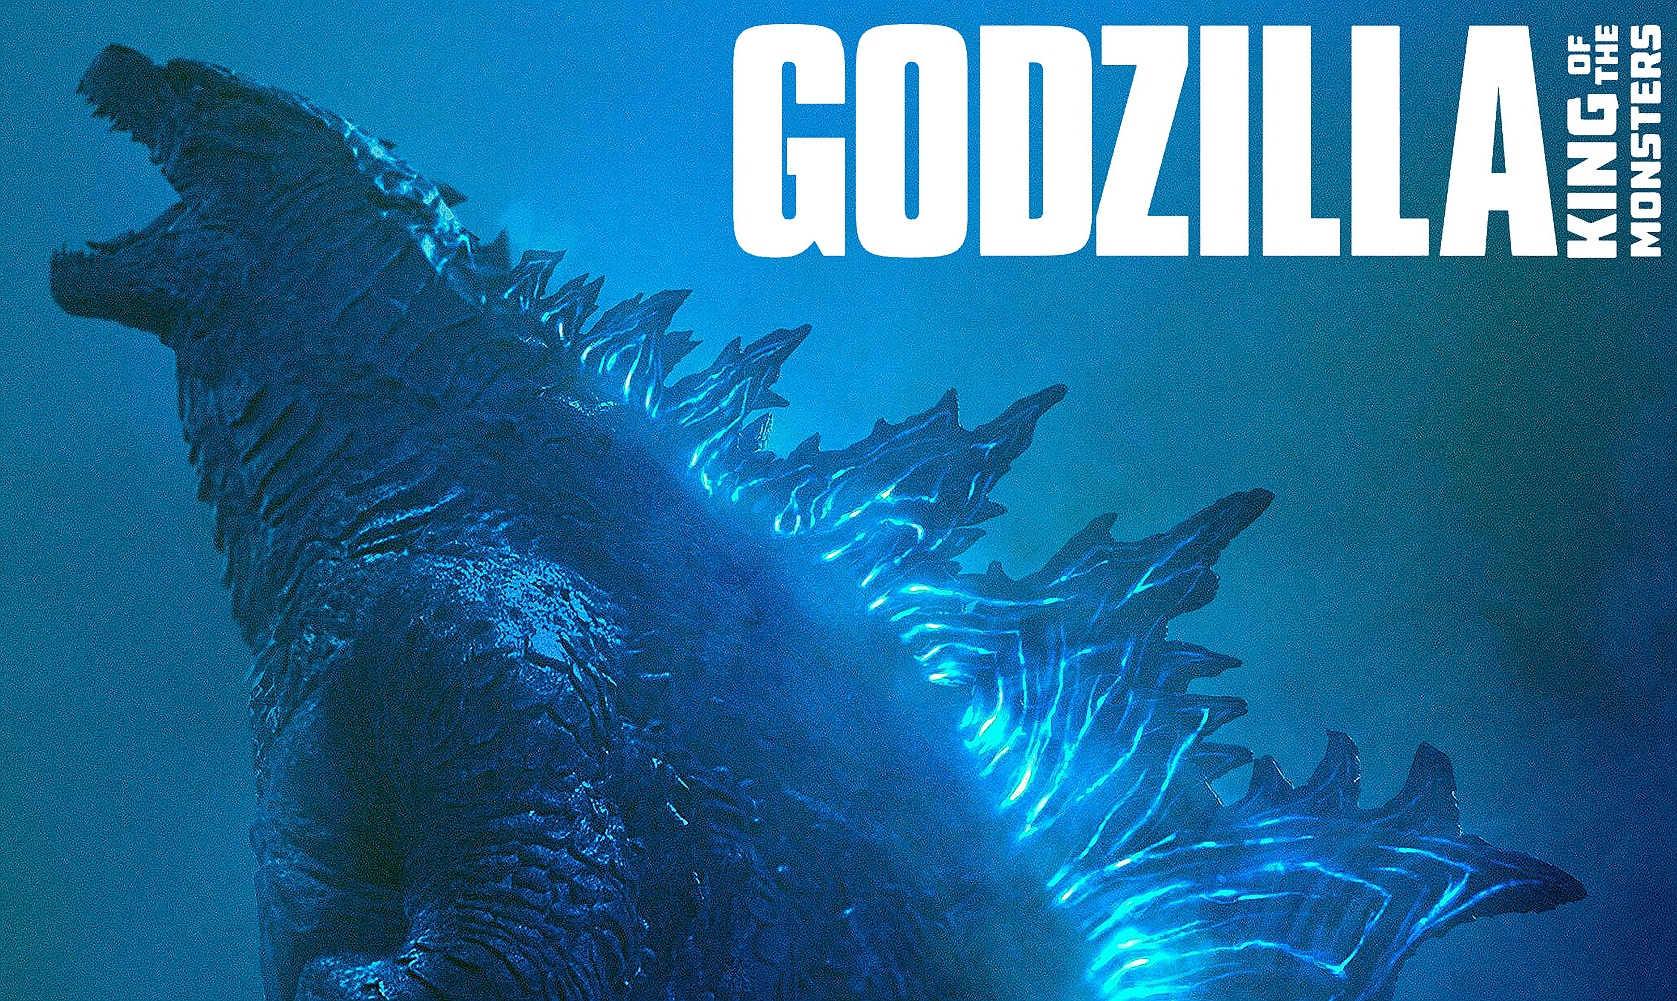 Speciale Godzilla II: King of the Monsters